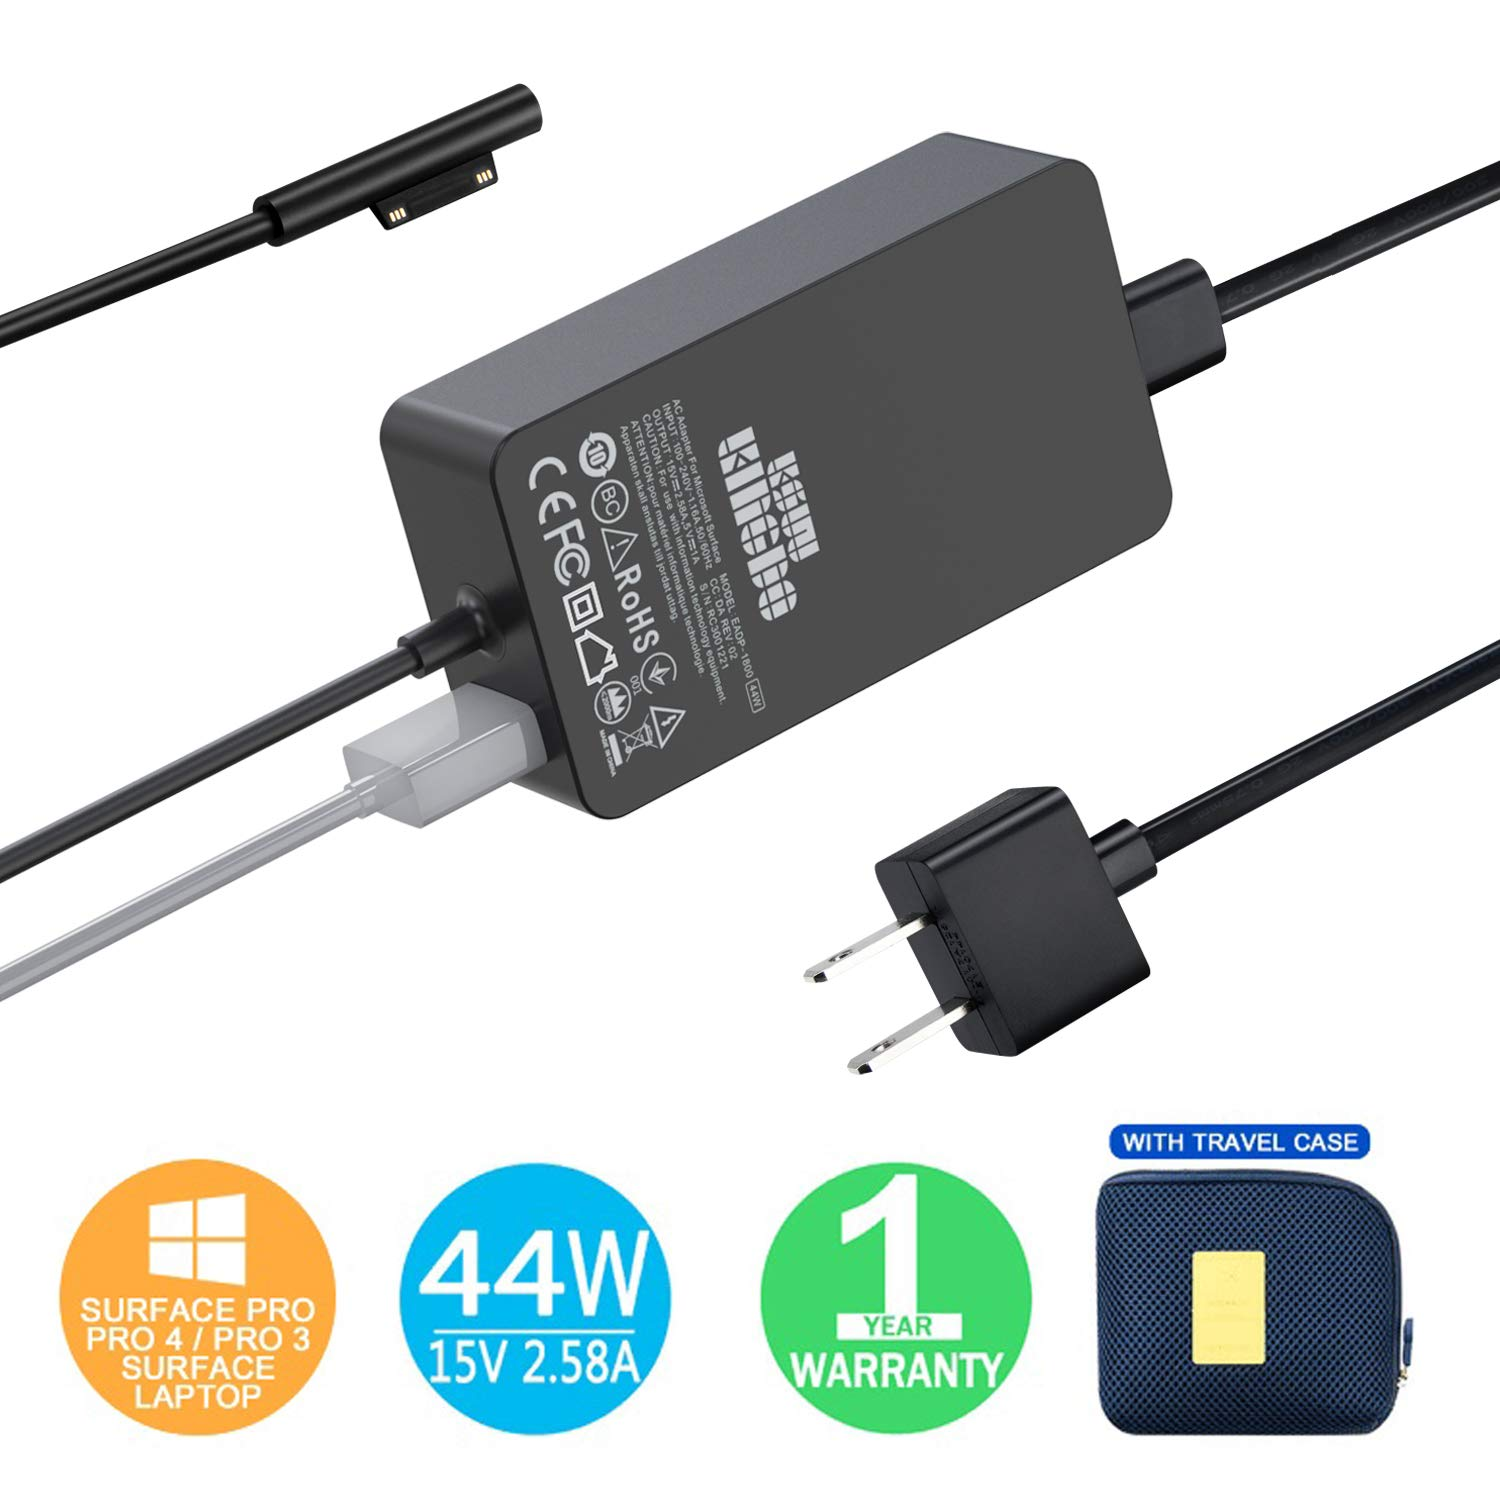 Surface Pro Surface Laptop Charger, 44W 15V 2.58A Power Supply Compatible Microsoft Surface Pro Surface Laptop Surface Pro 3 Pro 4 Surface Go & Surface Book with 6.2ft Power Cord and Carrying Pouch